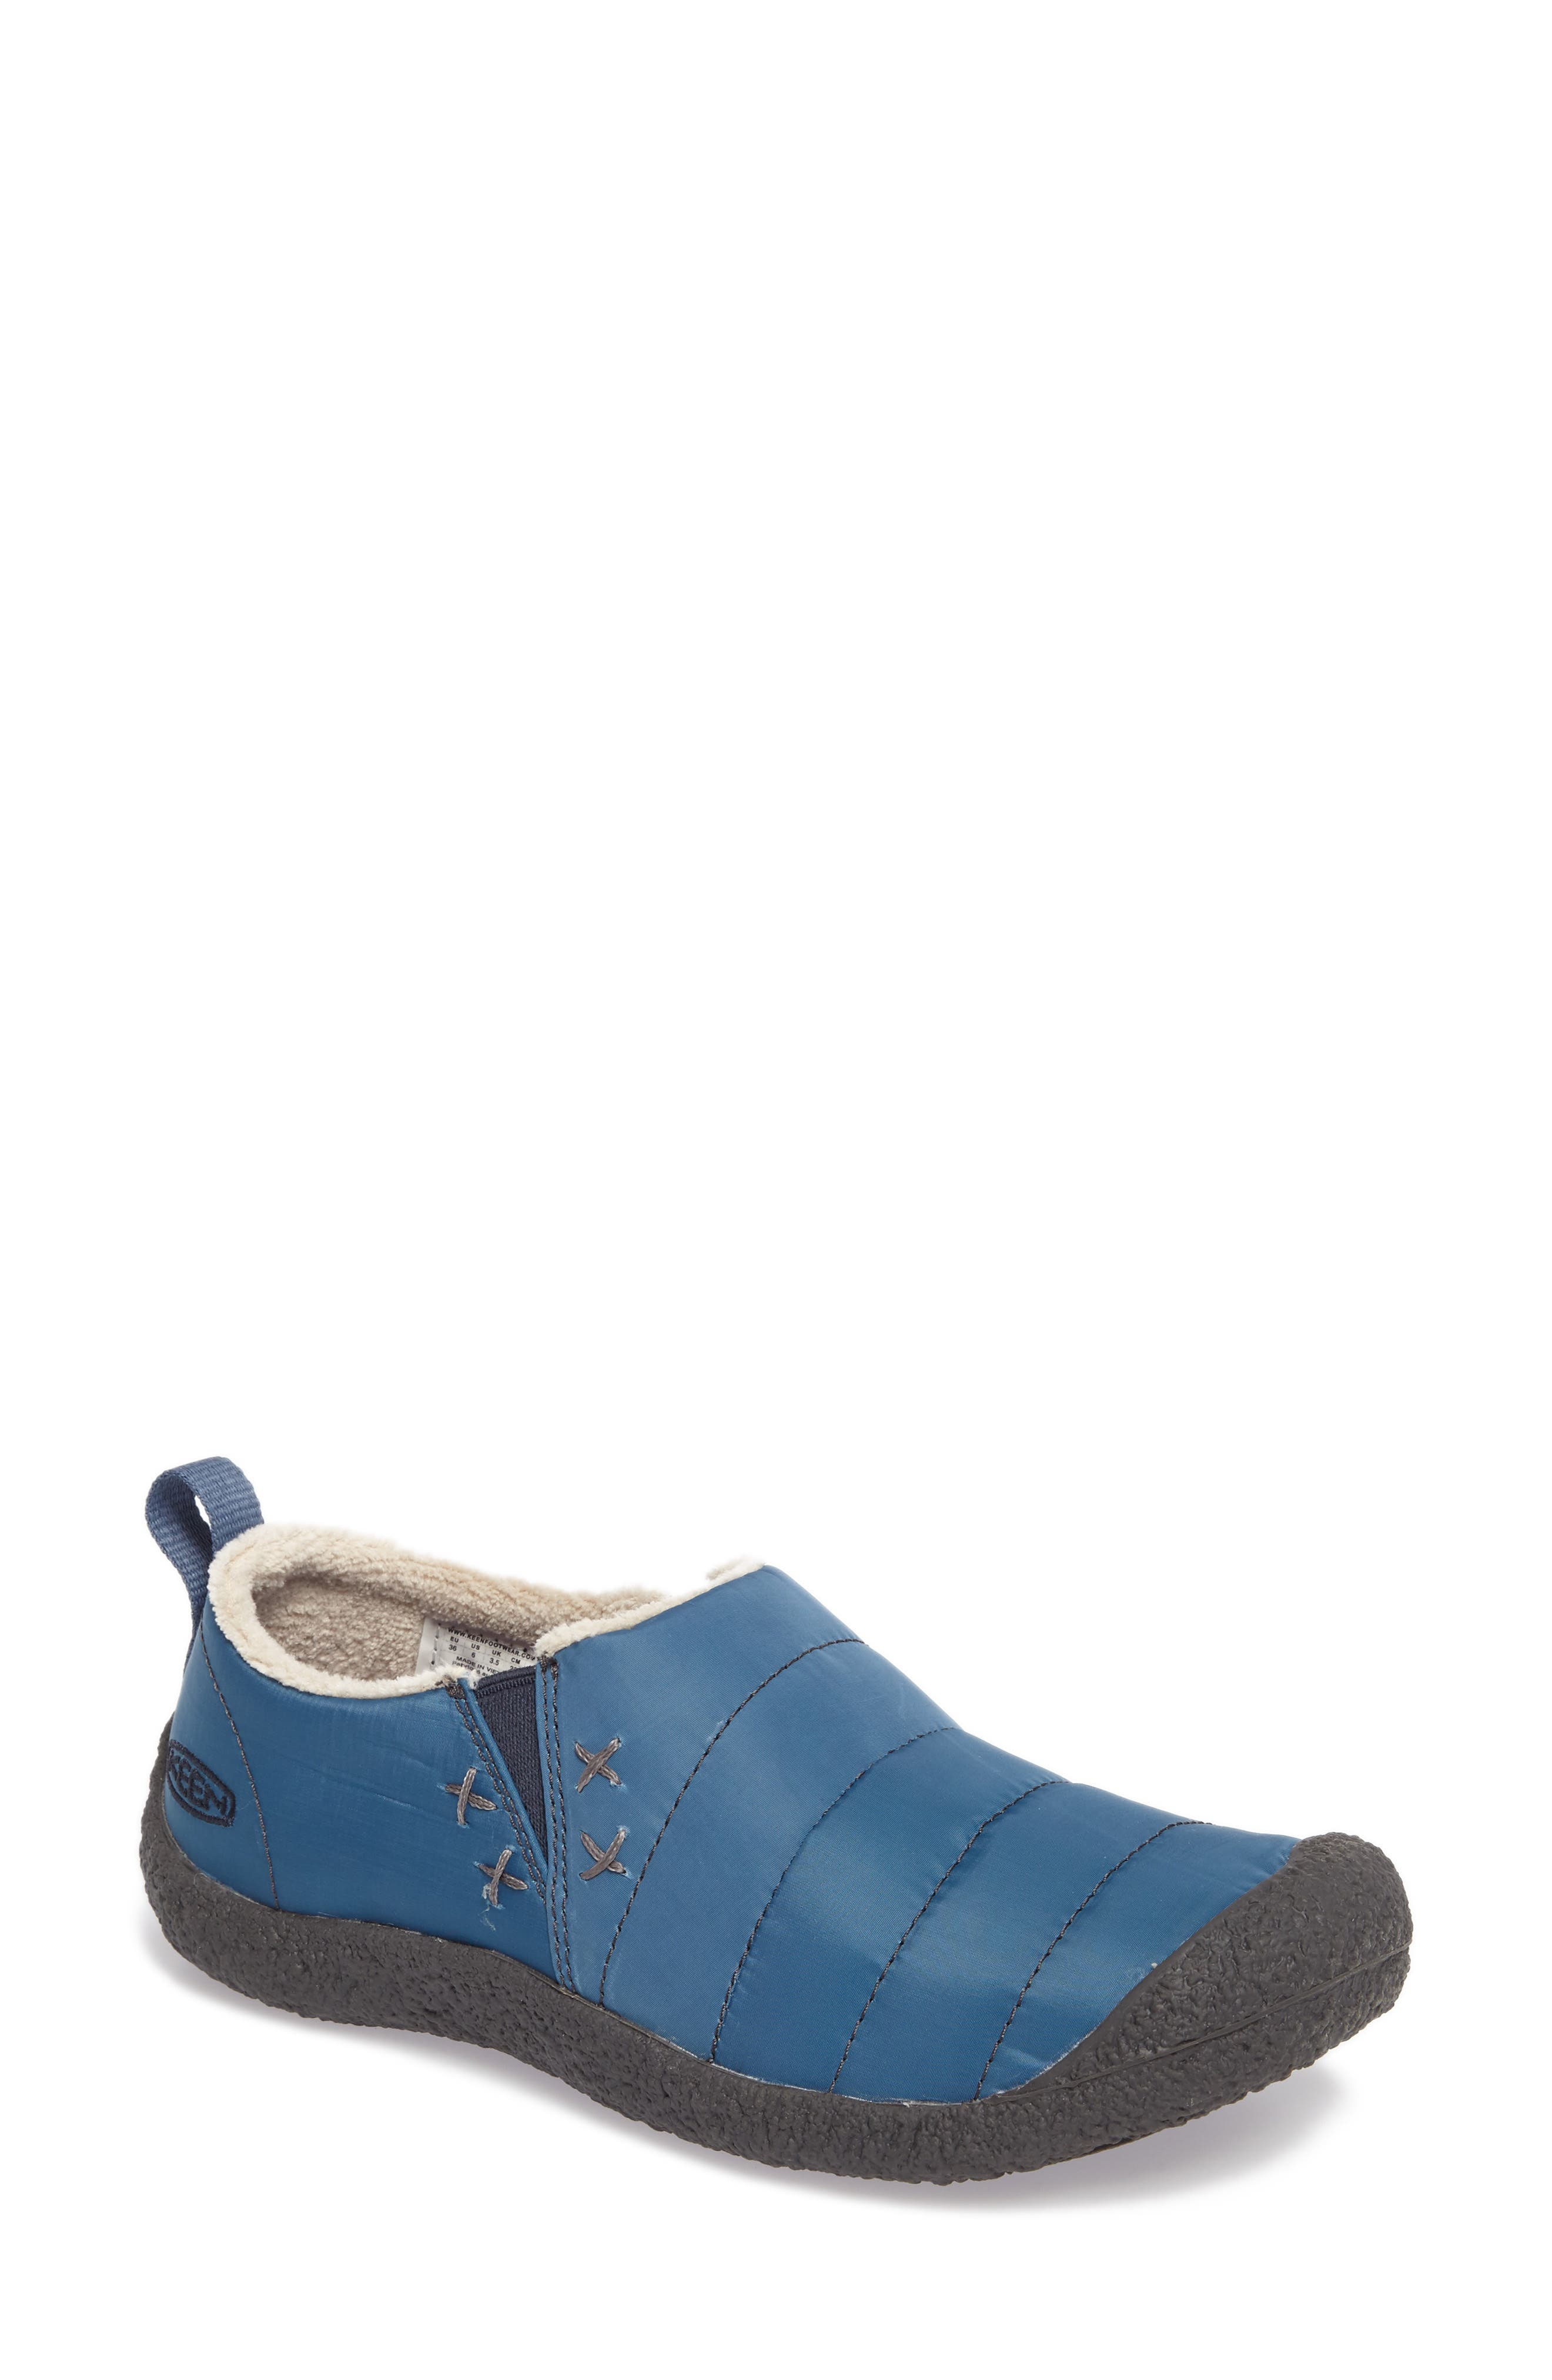 Howser II Water-Resistant Round Toe Clog,                         Main,                         color, Captains Blue Nylon